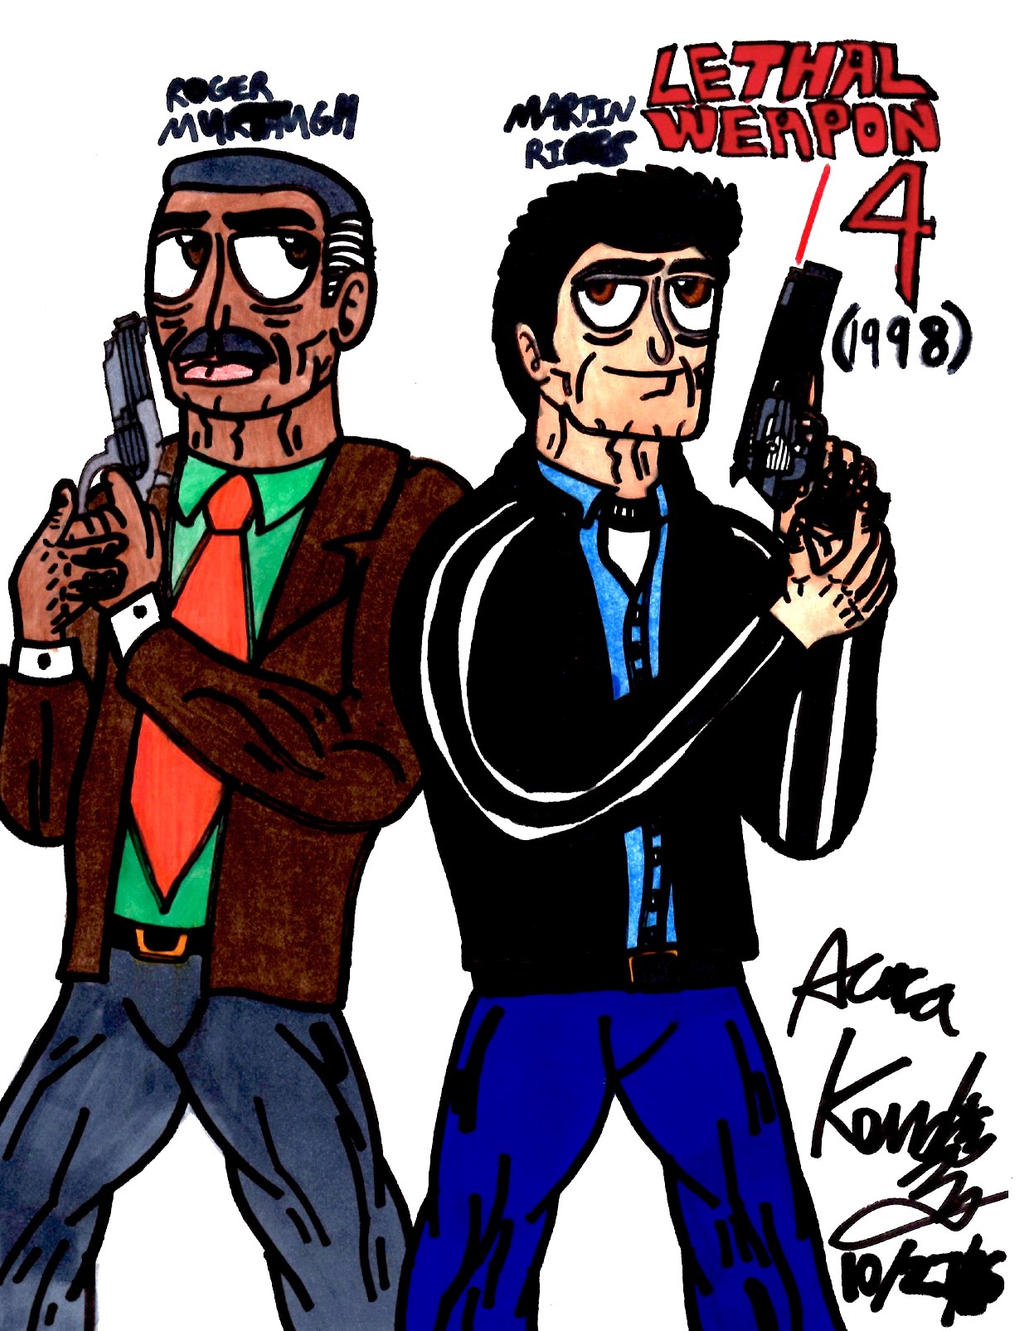 Lethal Weapon 4 1998 By Prime55 On Deviantart